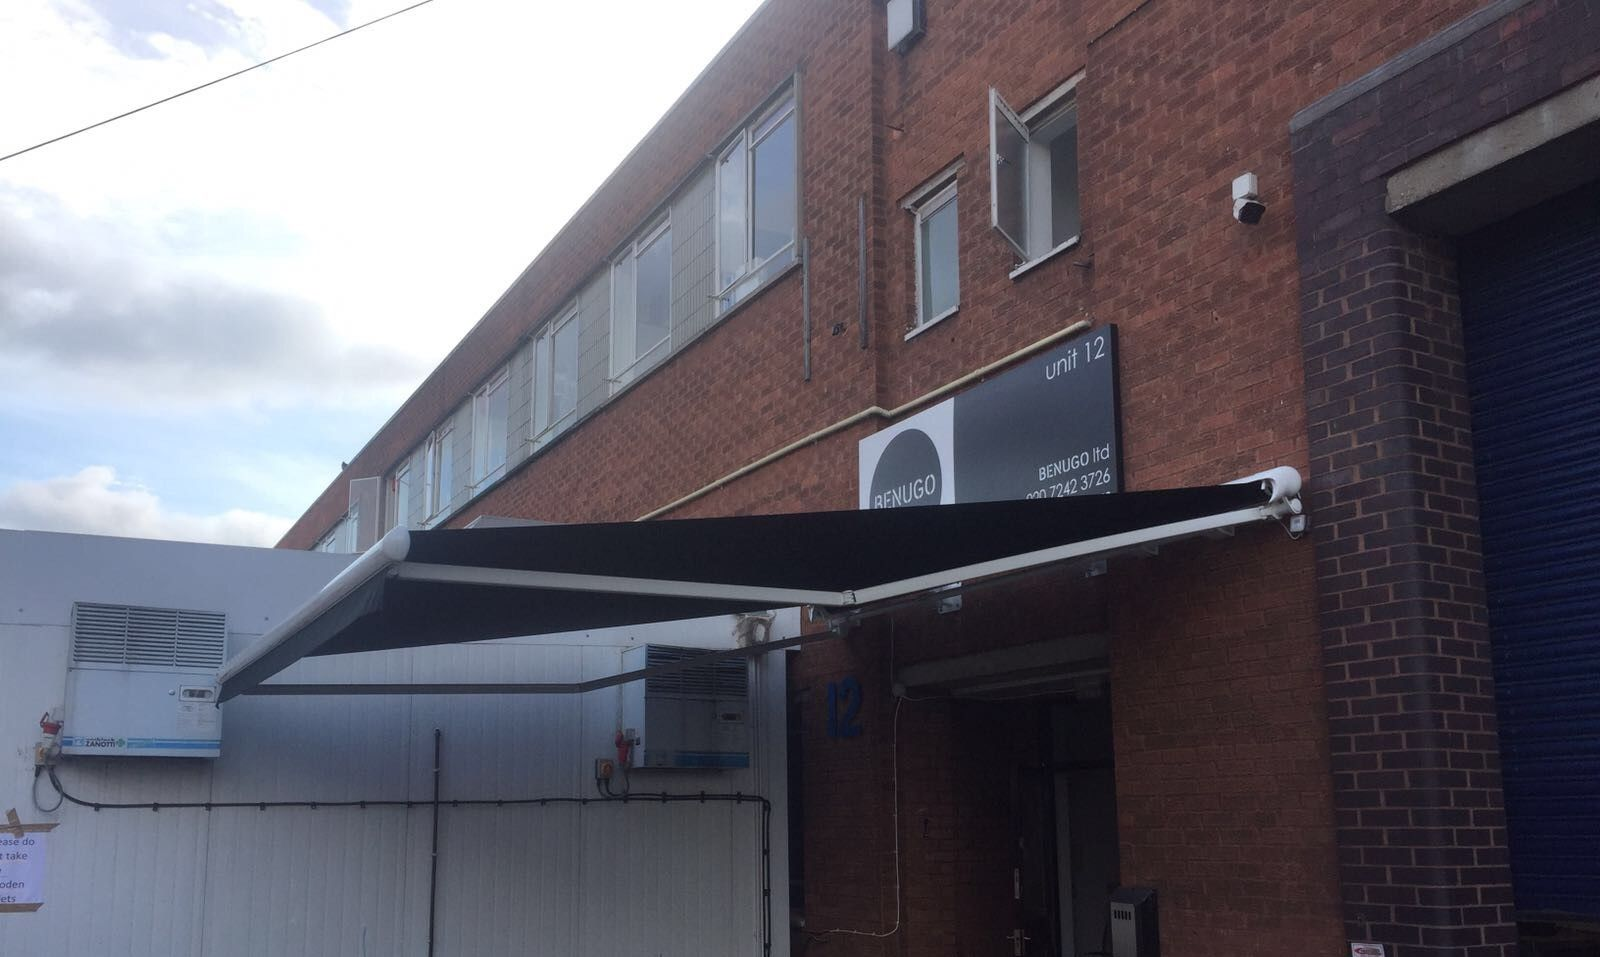 Here Is An Awning Specially Designed To Give A Larger Projection Then The Actual Width This Is The Markilux Uk Stretc Shop Awning Blinds Wall Spaces